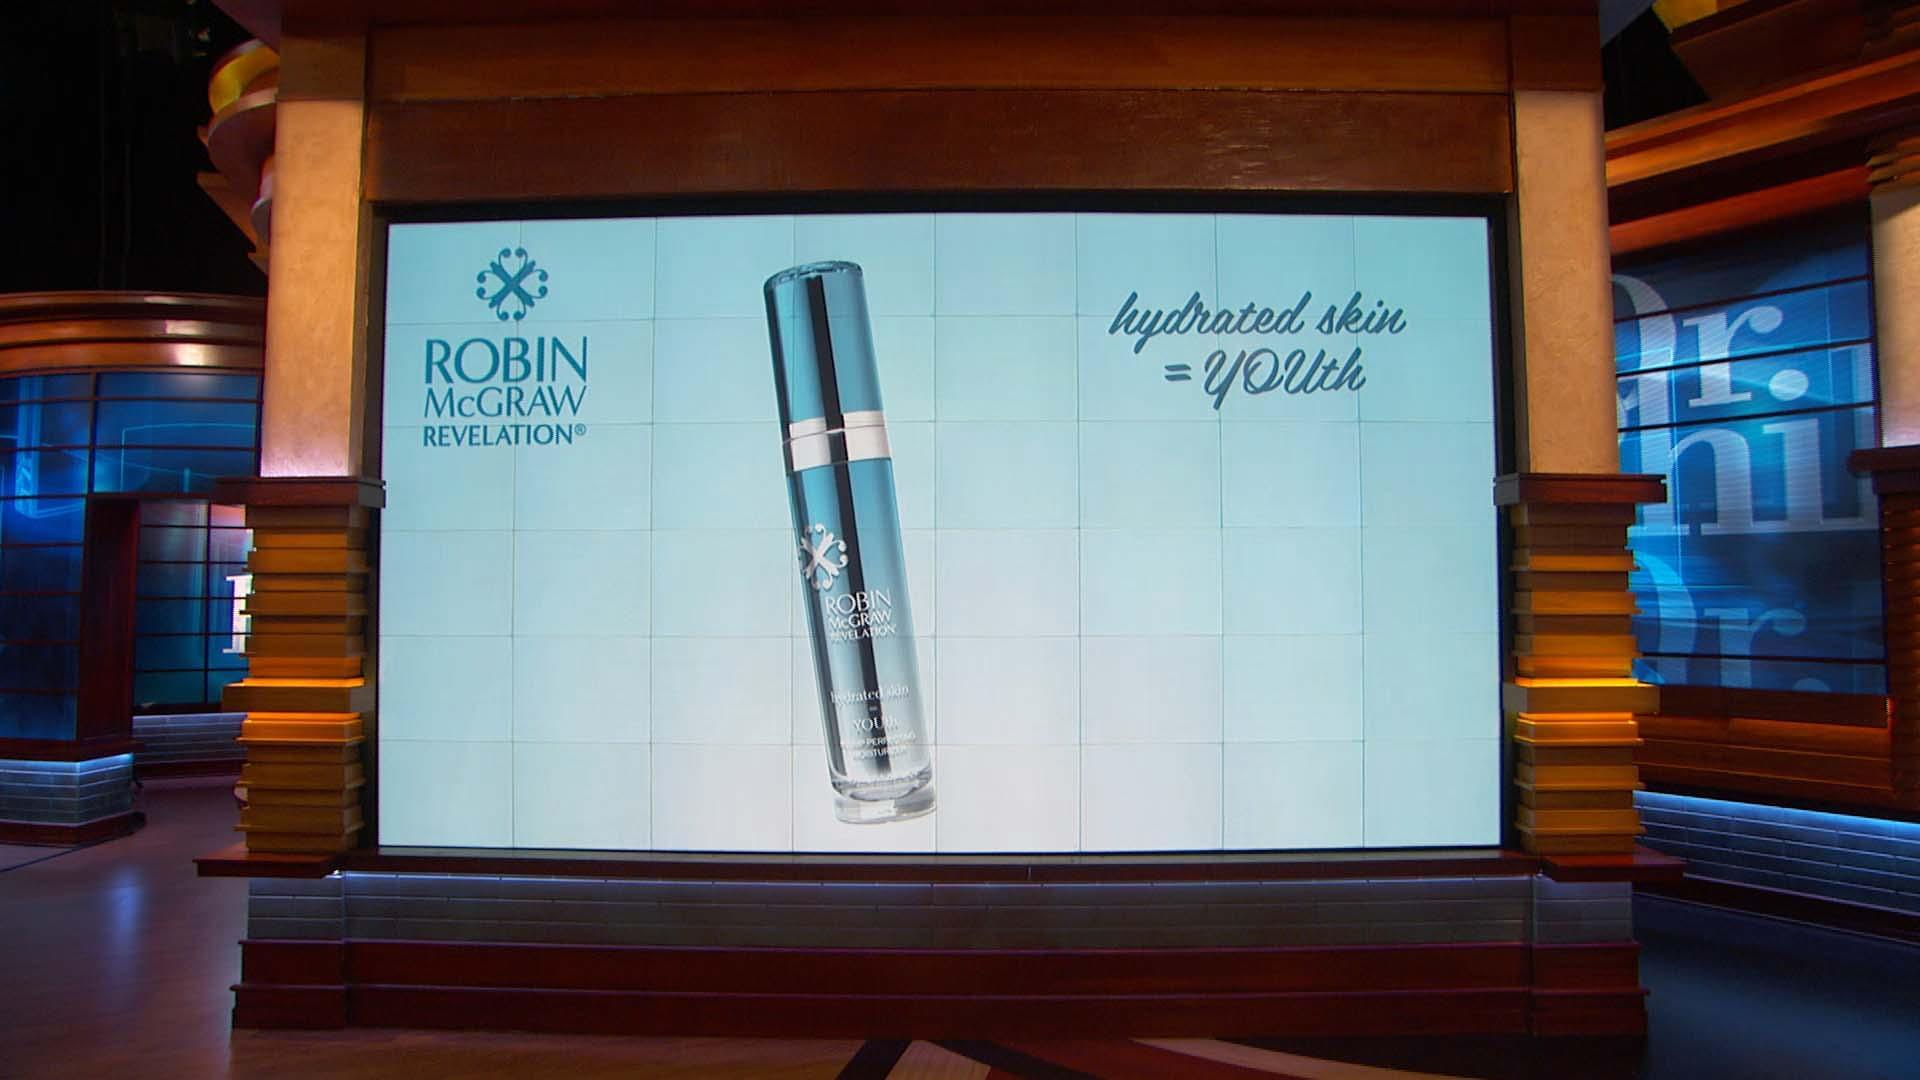 Hydrate and Protect Your Skin with Hydrated Skin = YOUth from Robin McGraw Revelation